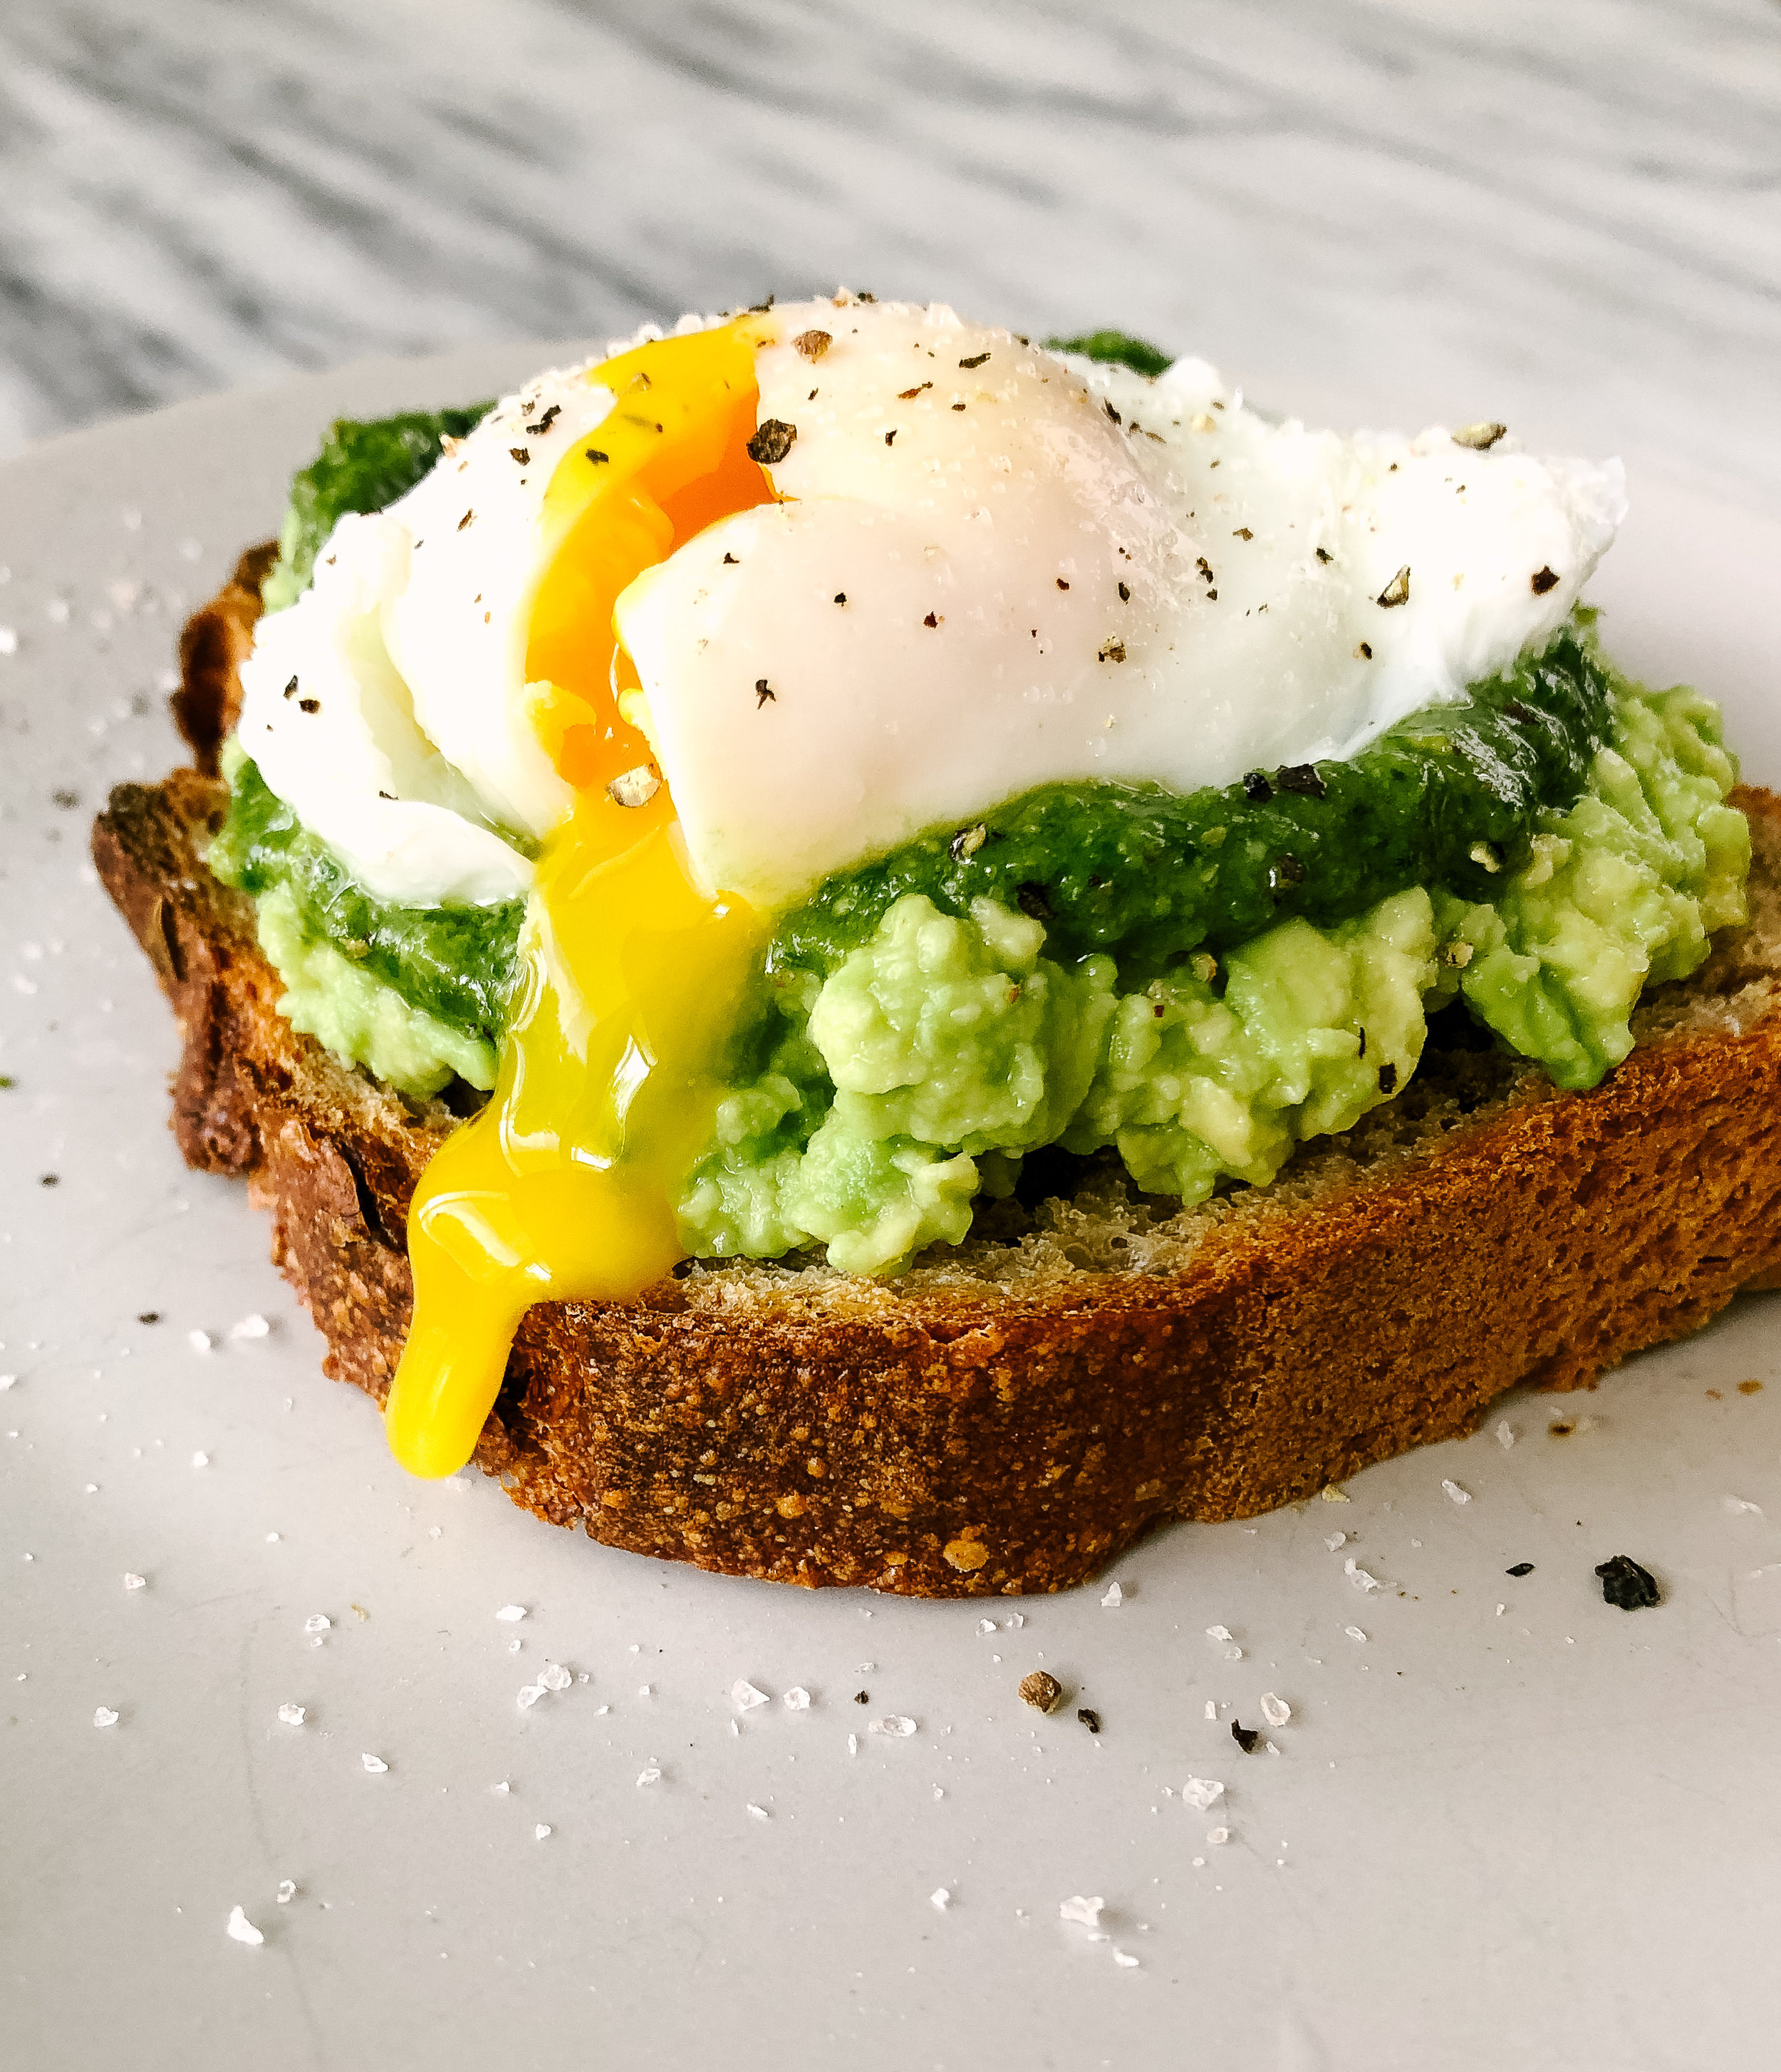 You can learn to make perfect poached eggs every single time with this easy recipe. Master the art of the perfect poached egg and delight your friends and family with your skills.